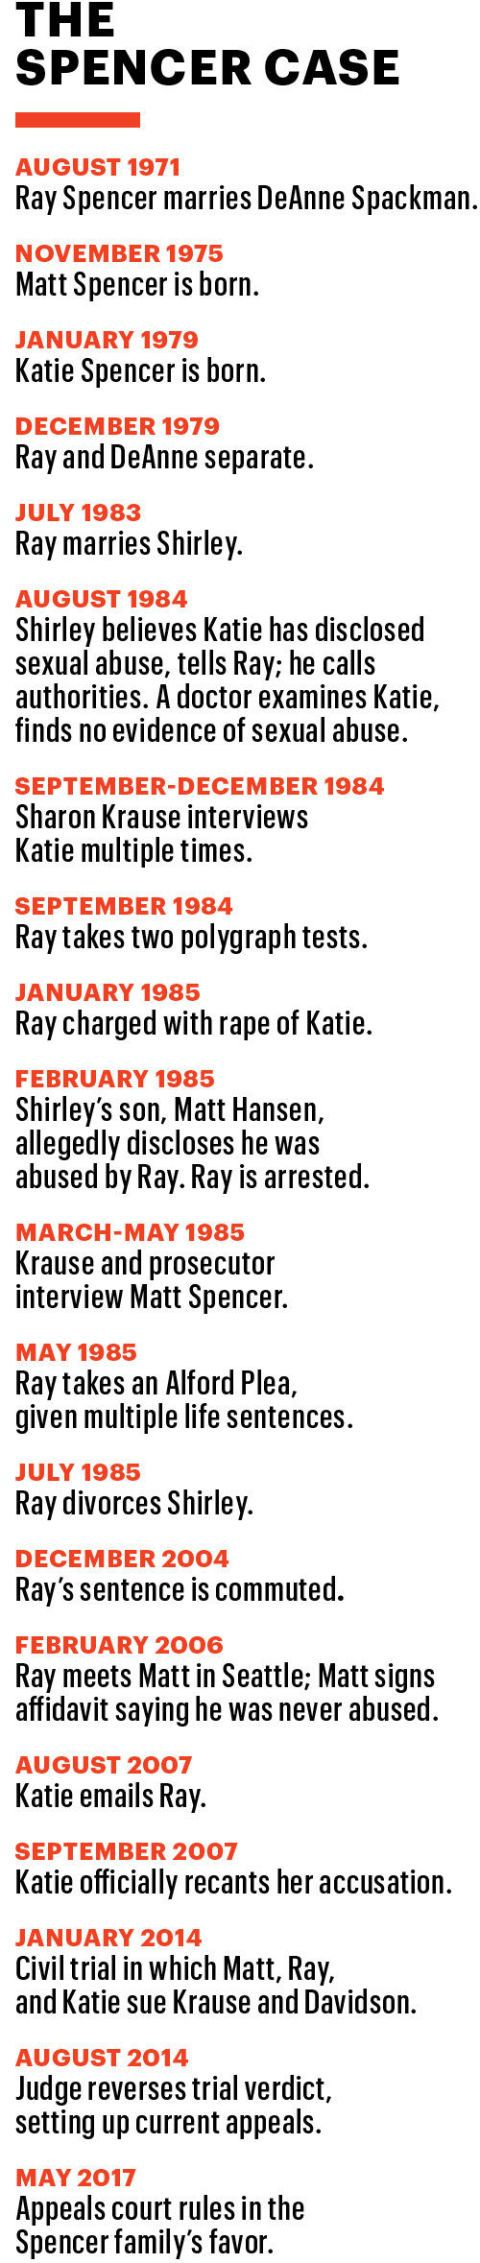 Ray Spencer Falsely Accused of Rape and Sexual Abuse by Kids